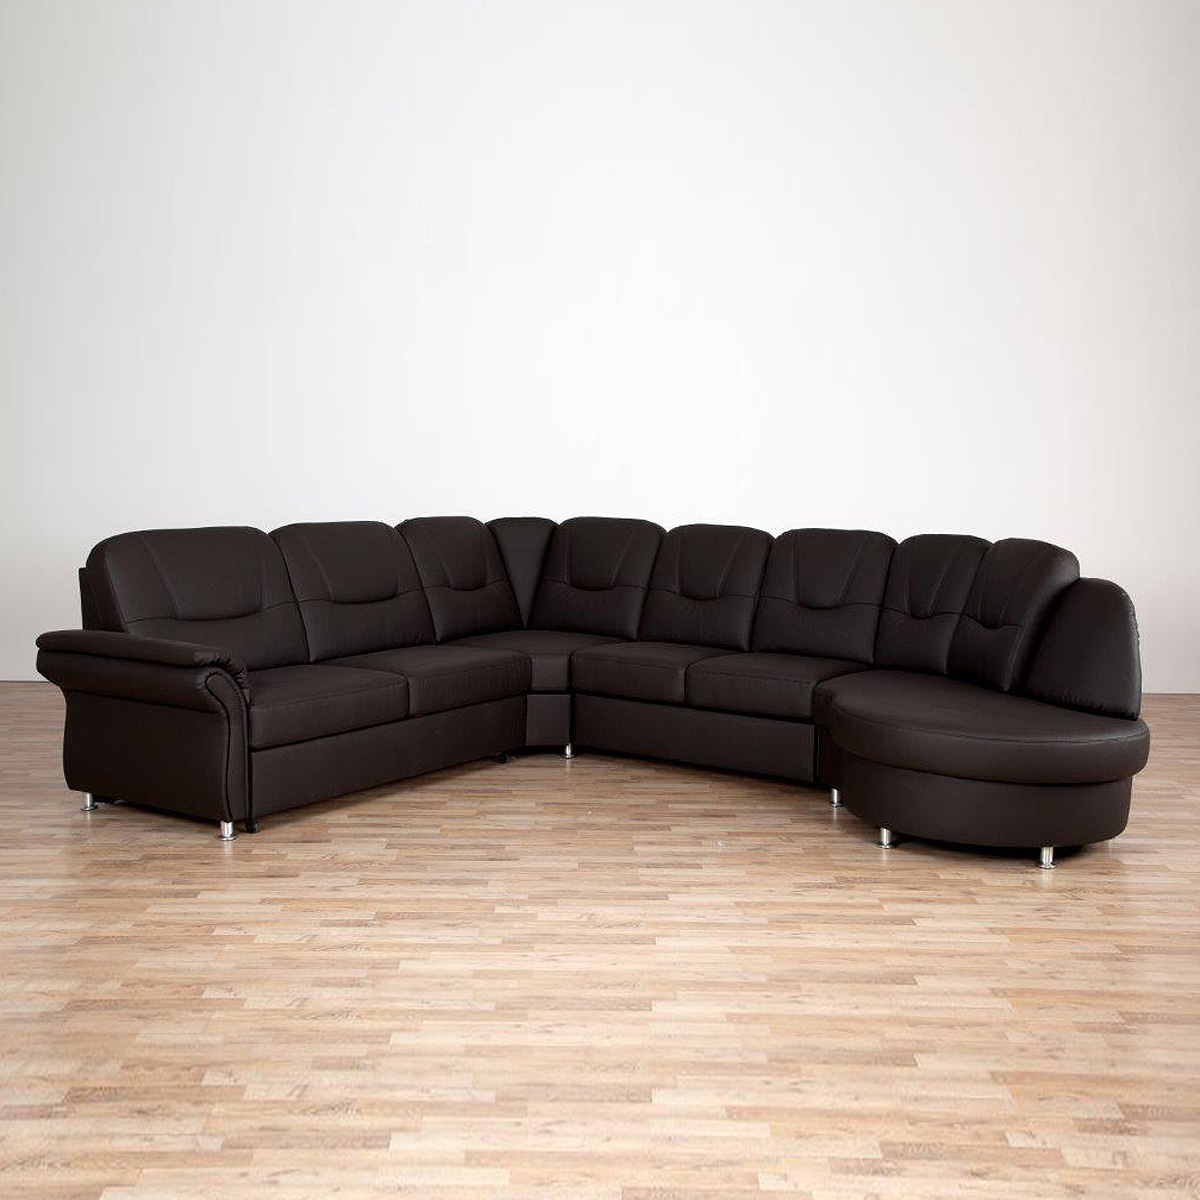 wohnlandschaft olaf sofa ecksofa in braun mit bettfunktion und bettkasten ebay. Black Bedroom Furniture Sets. Home Design Ideas